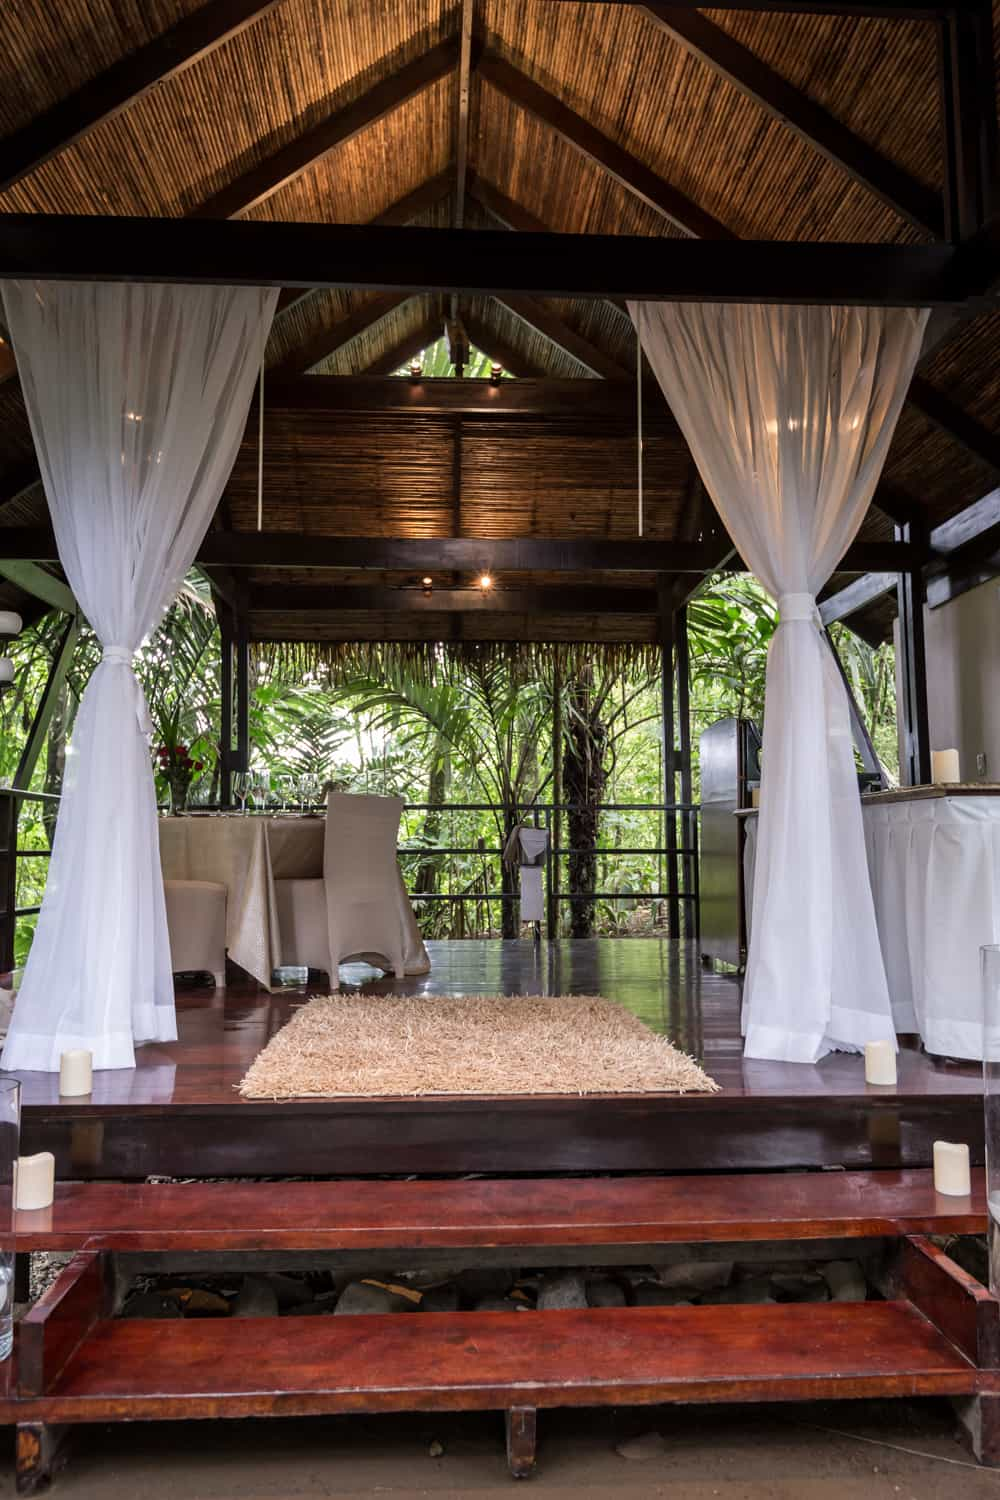 Entrance to bungalow for romantic newlywed dinner.